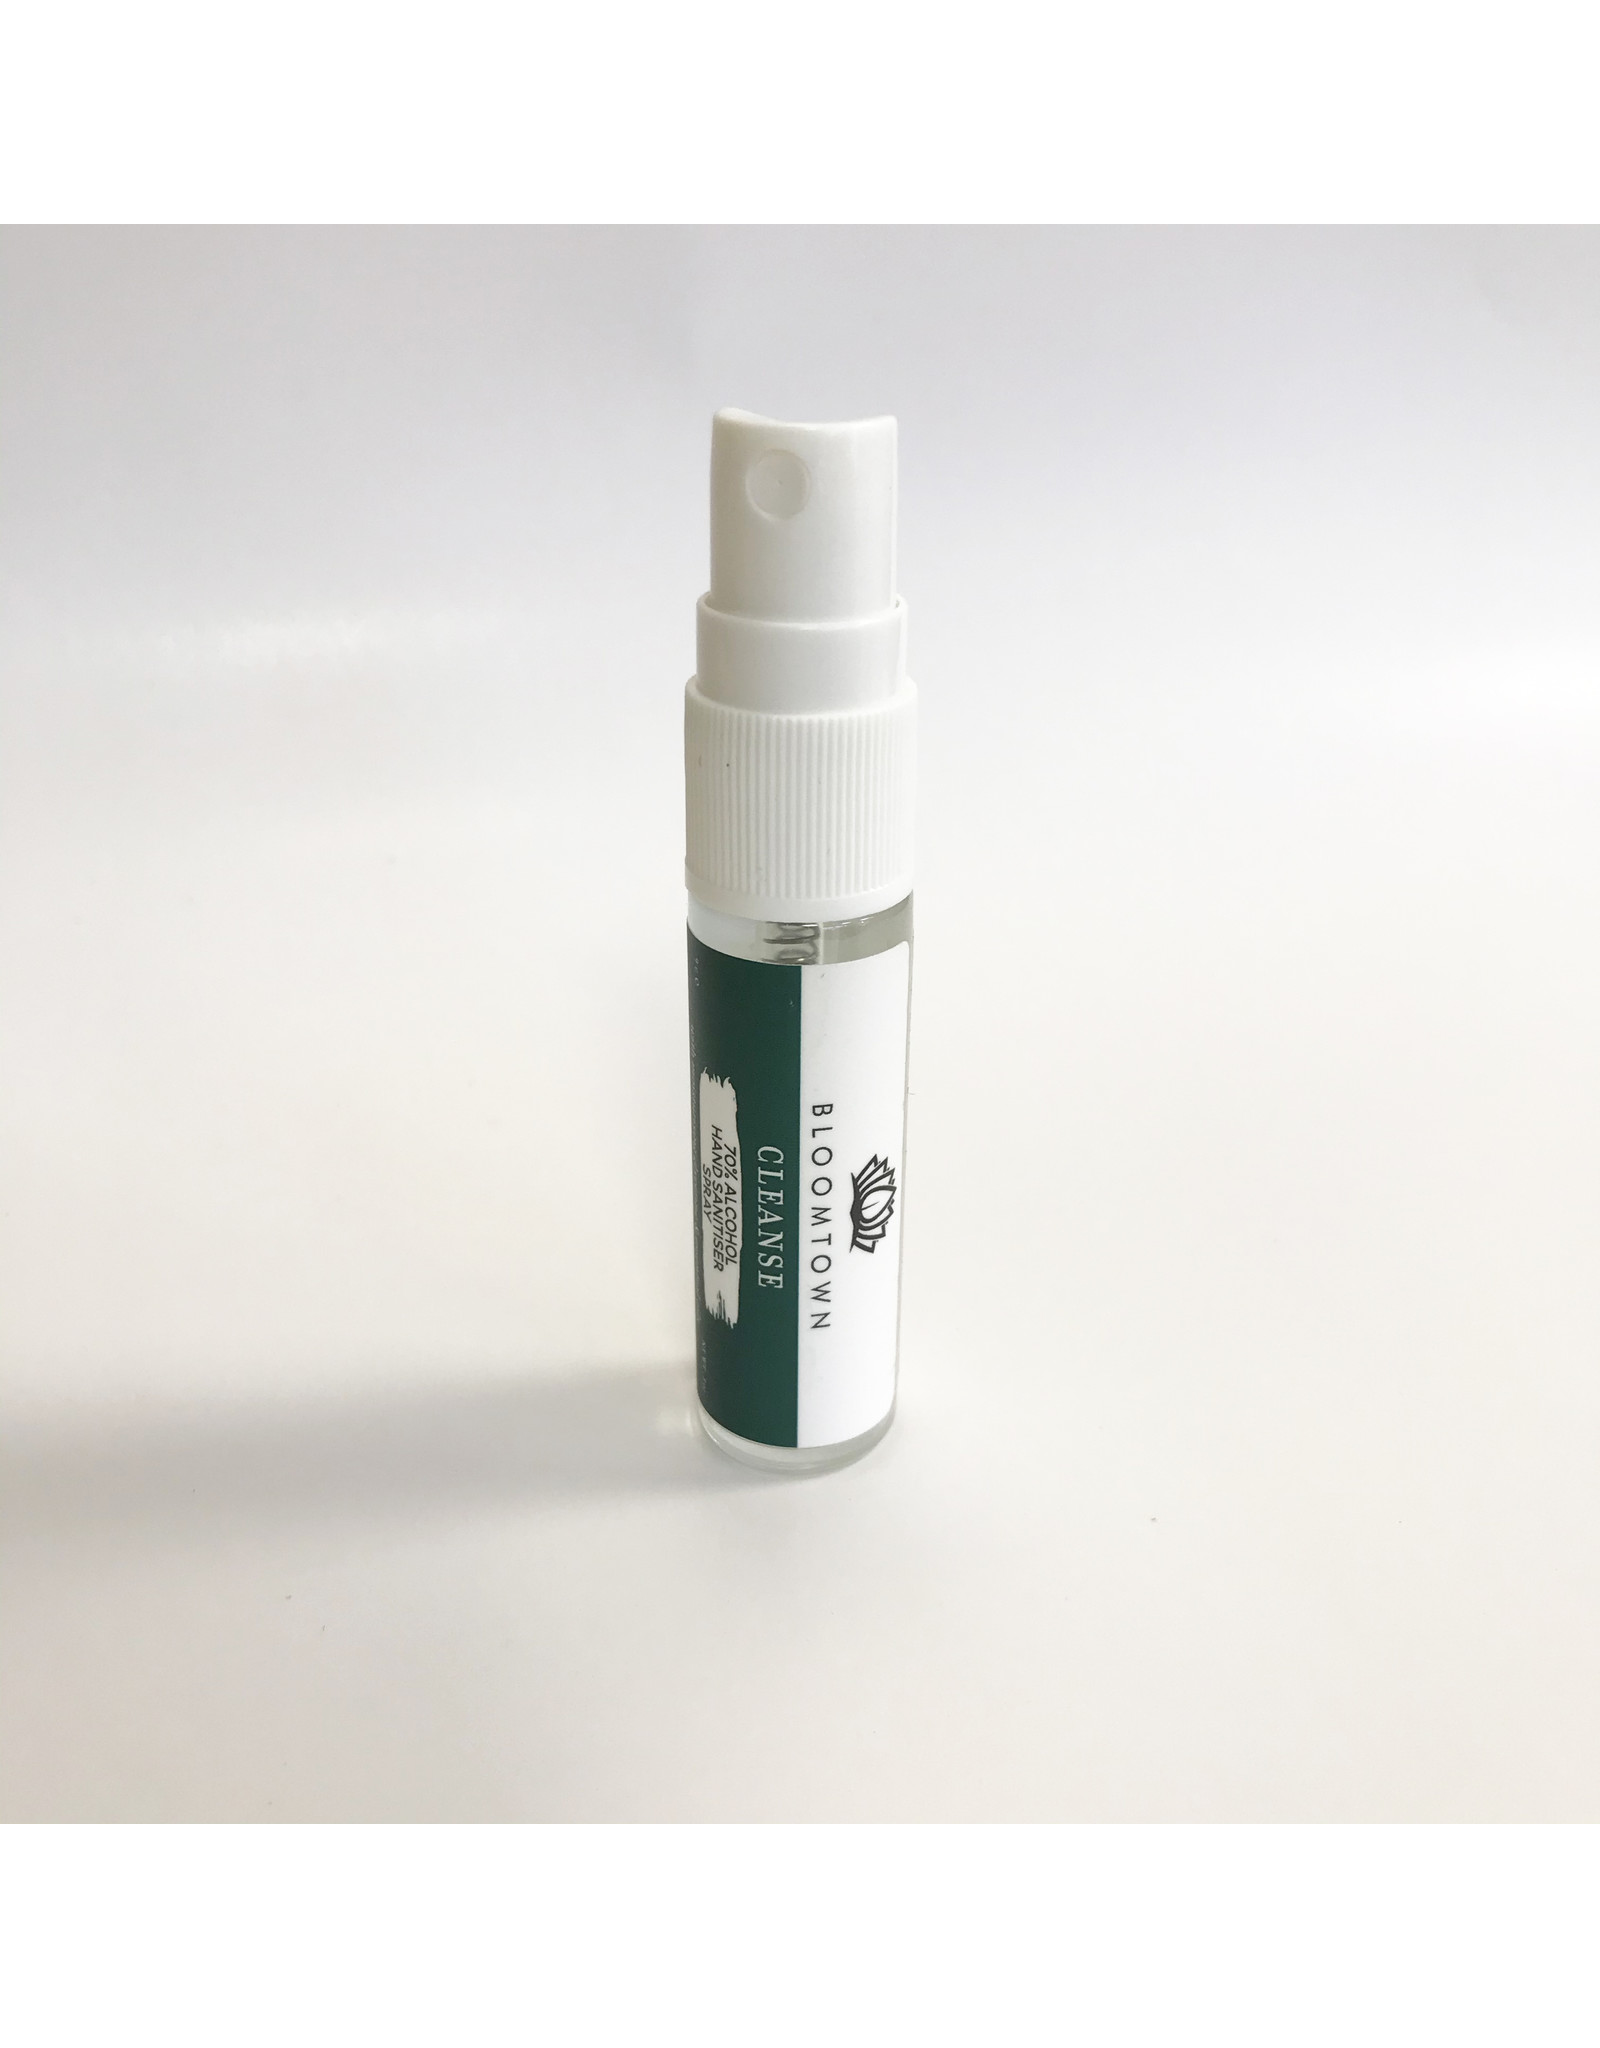 Pocket Size Natural Hand Sanitiser